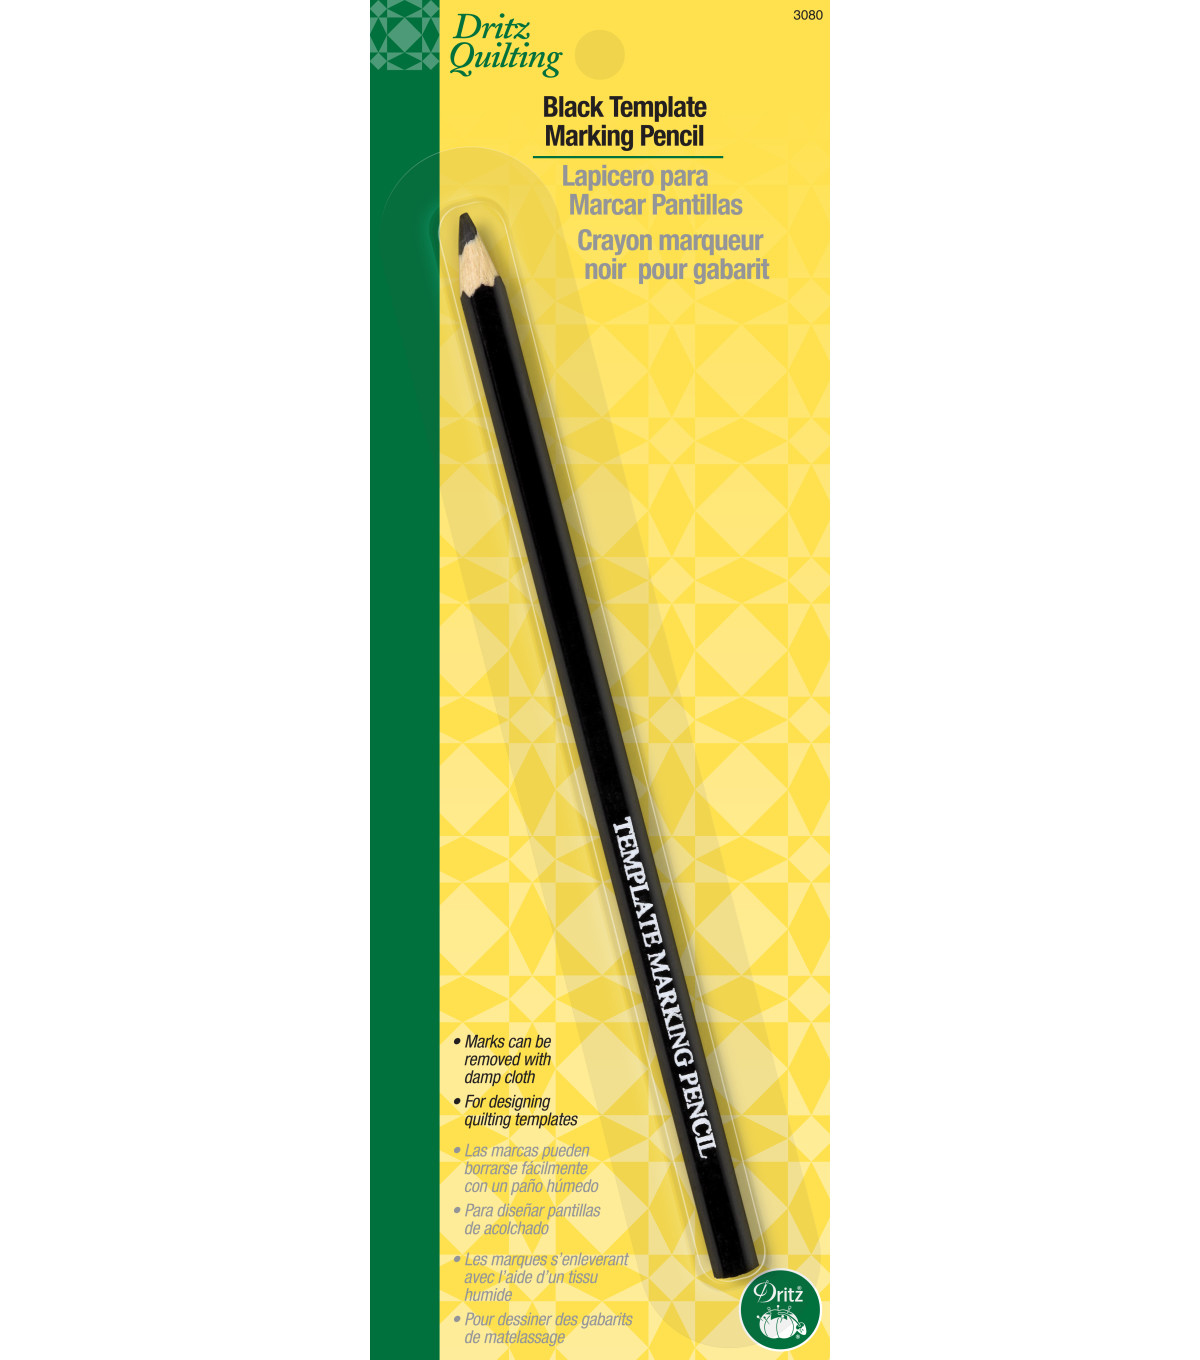 Dritz Quilting Template Marking Pencil Black